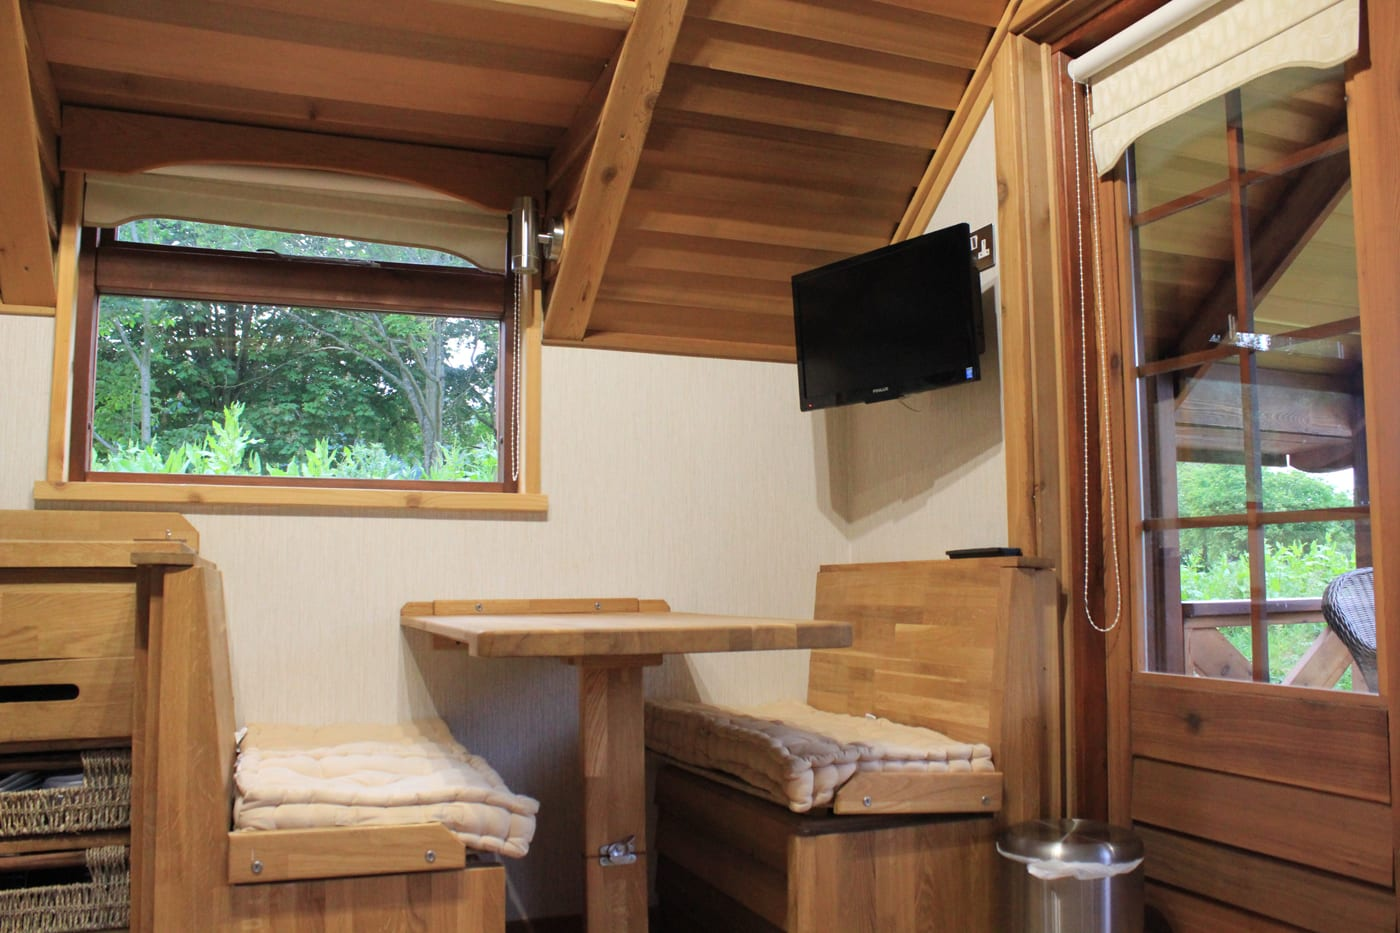 Swiss Farm Touring Park - Glamping Cabins